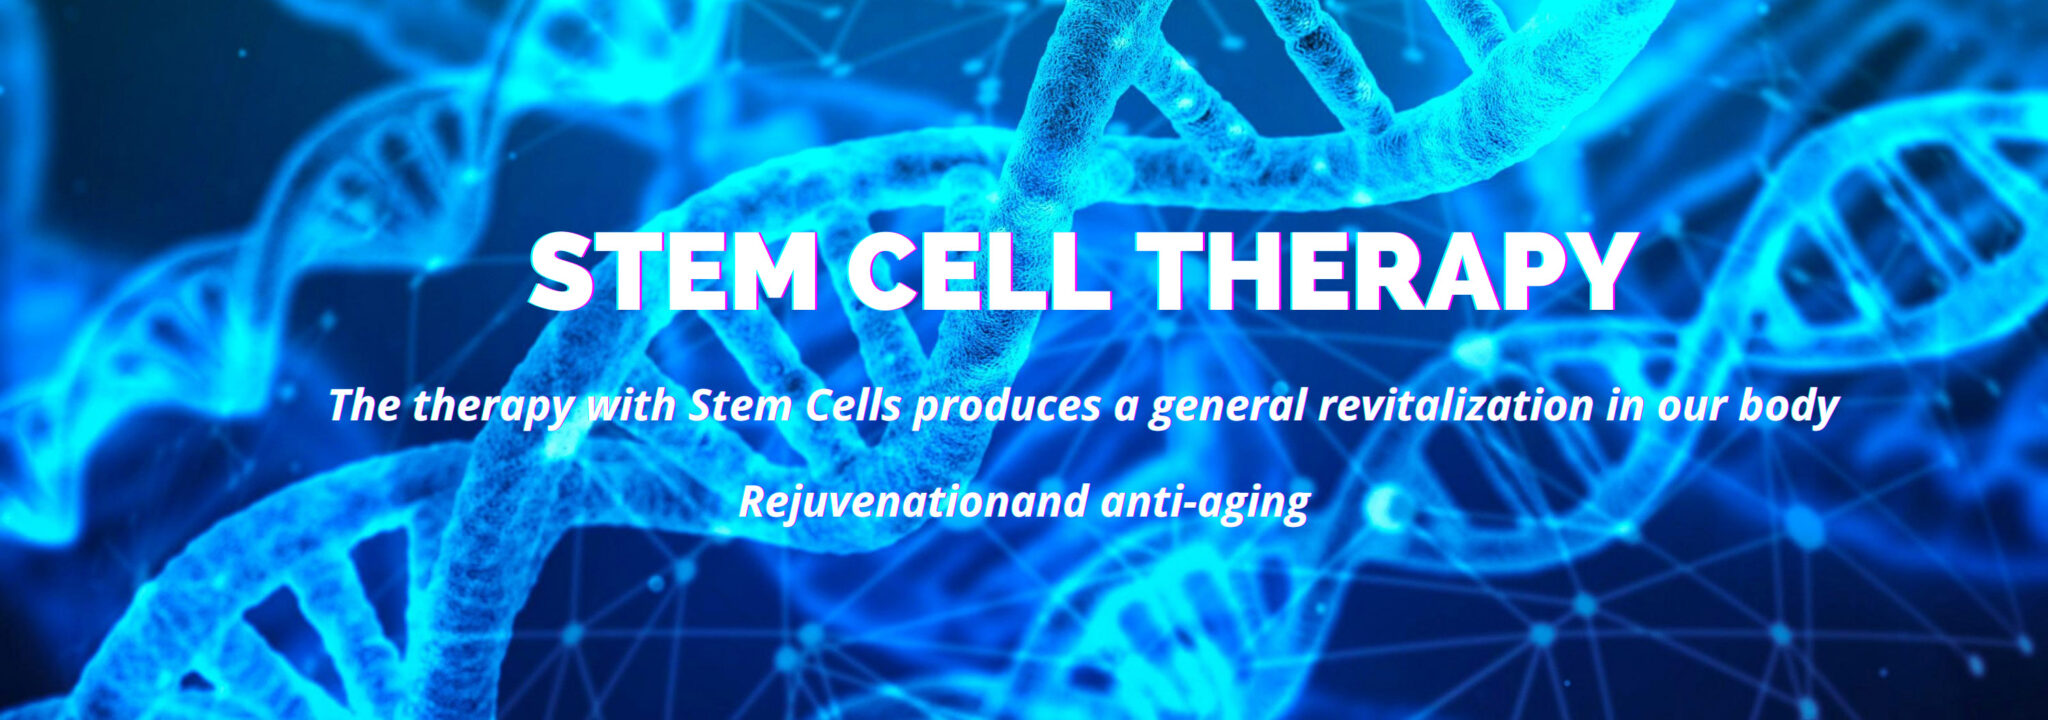 Stem Cell Theraphy